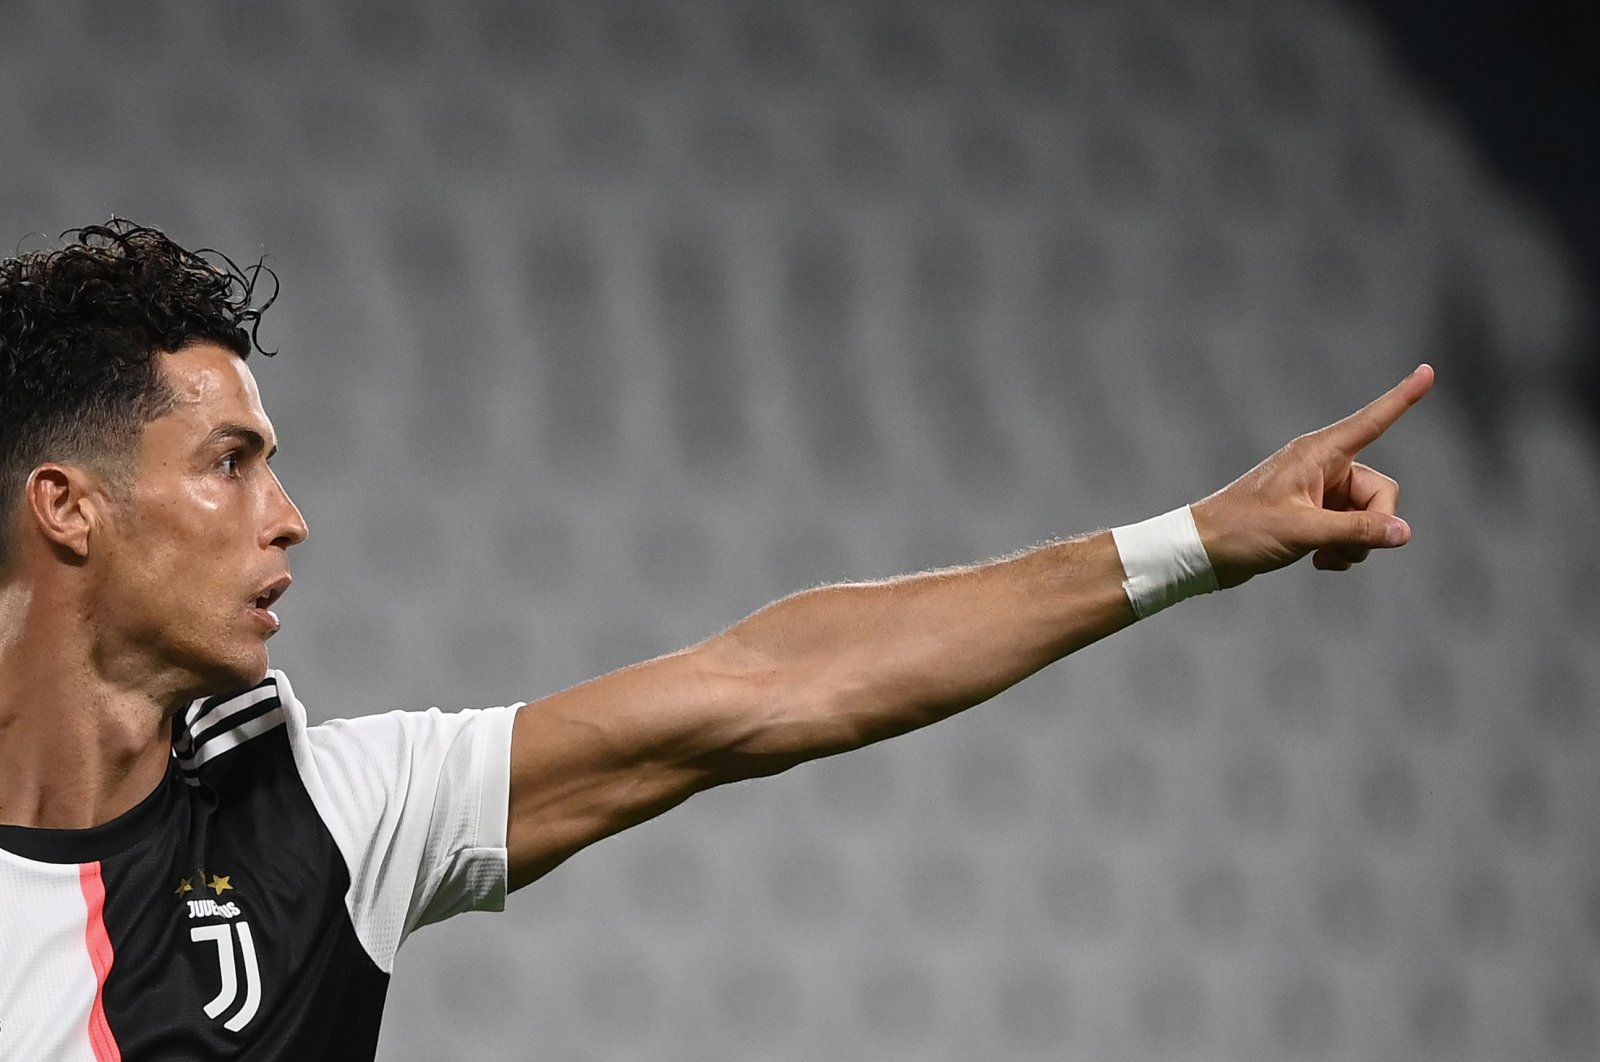 Juventus' Cristiano Ronaldo celebrates after scoring a goal during a Serie A match against Lazio, in Turin, Italy, July 20, 2020. (AFP Photo)